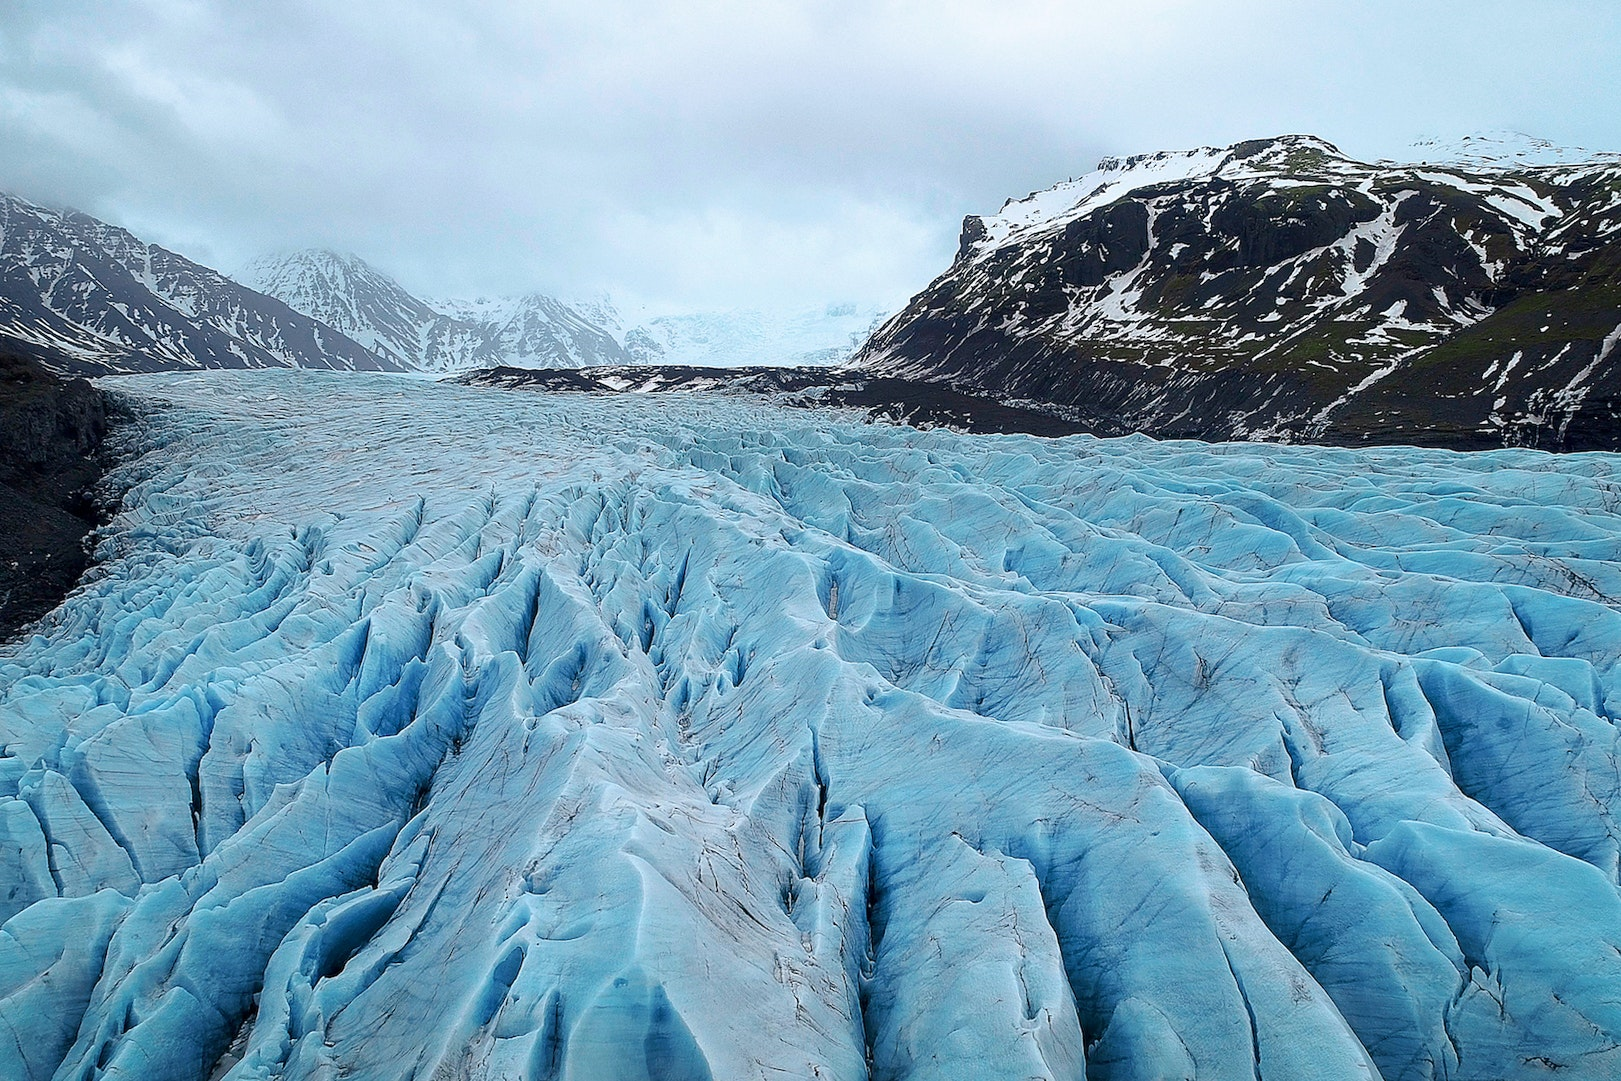 Vatnajökull is the most voluminous ice cap in Iceland and one of the largest glaciers in Europe.